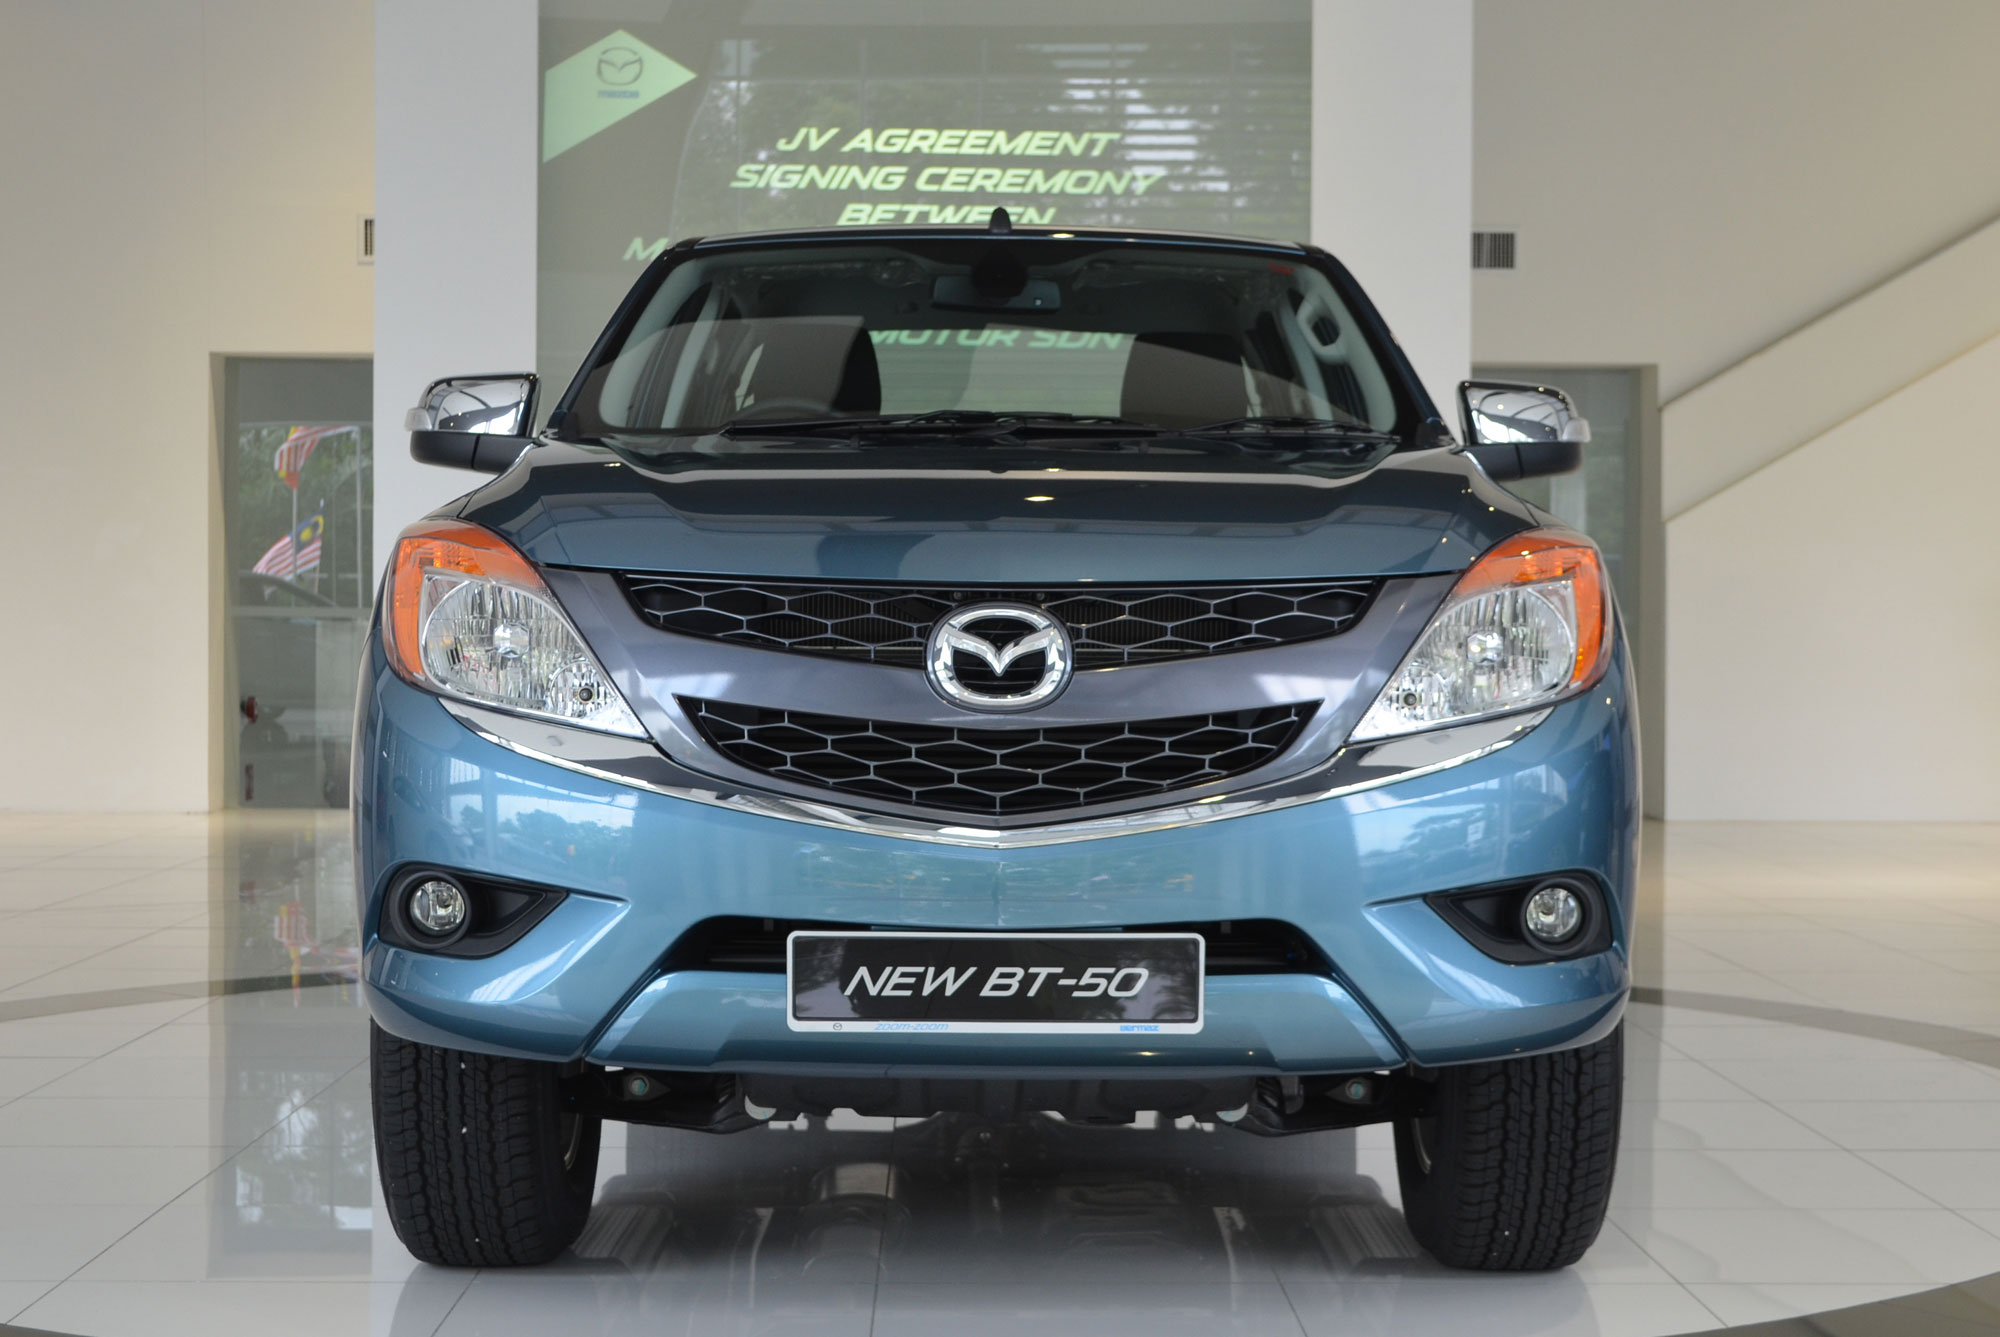 Fair Market Value Calculator >> Mazda BT-50 truck - full live gallery, specs and prices